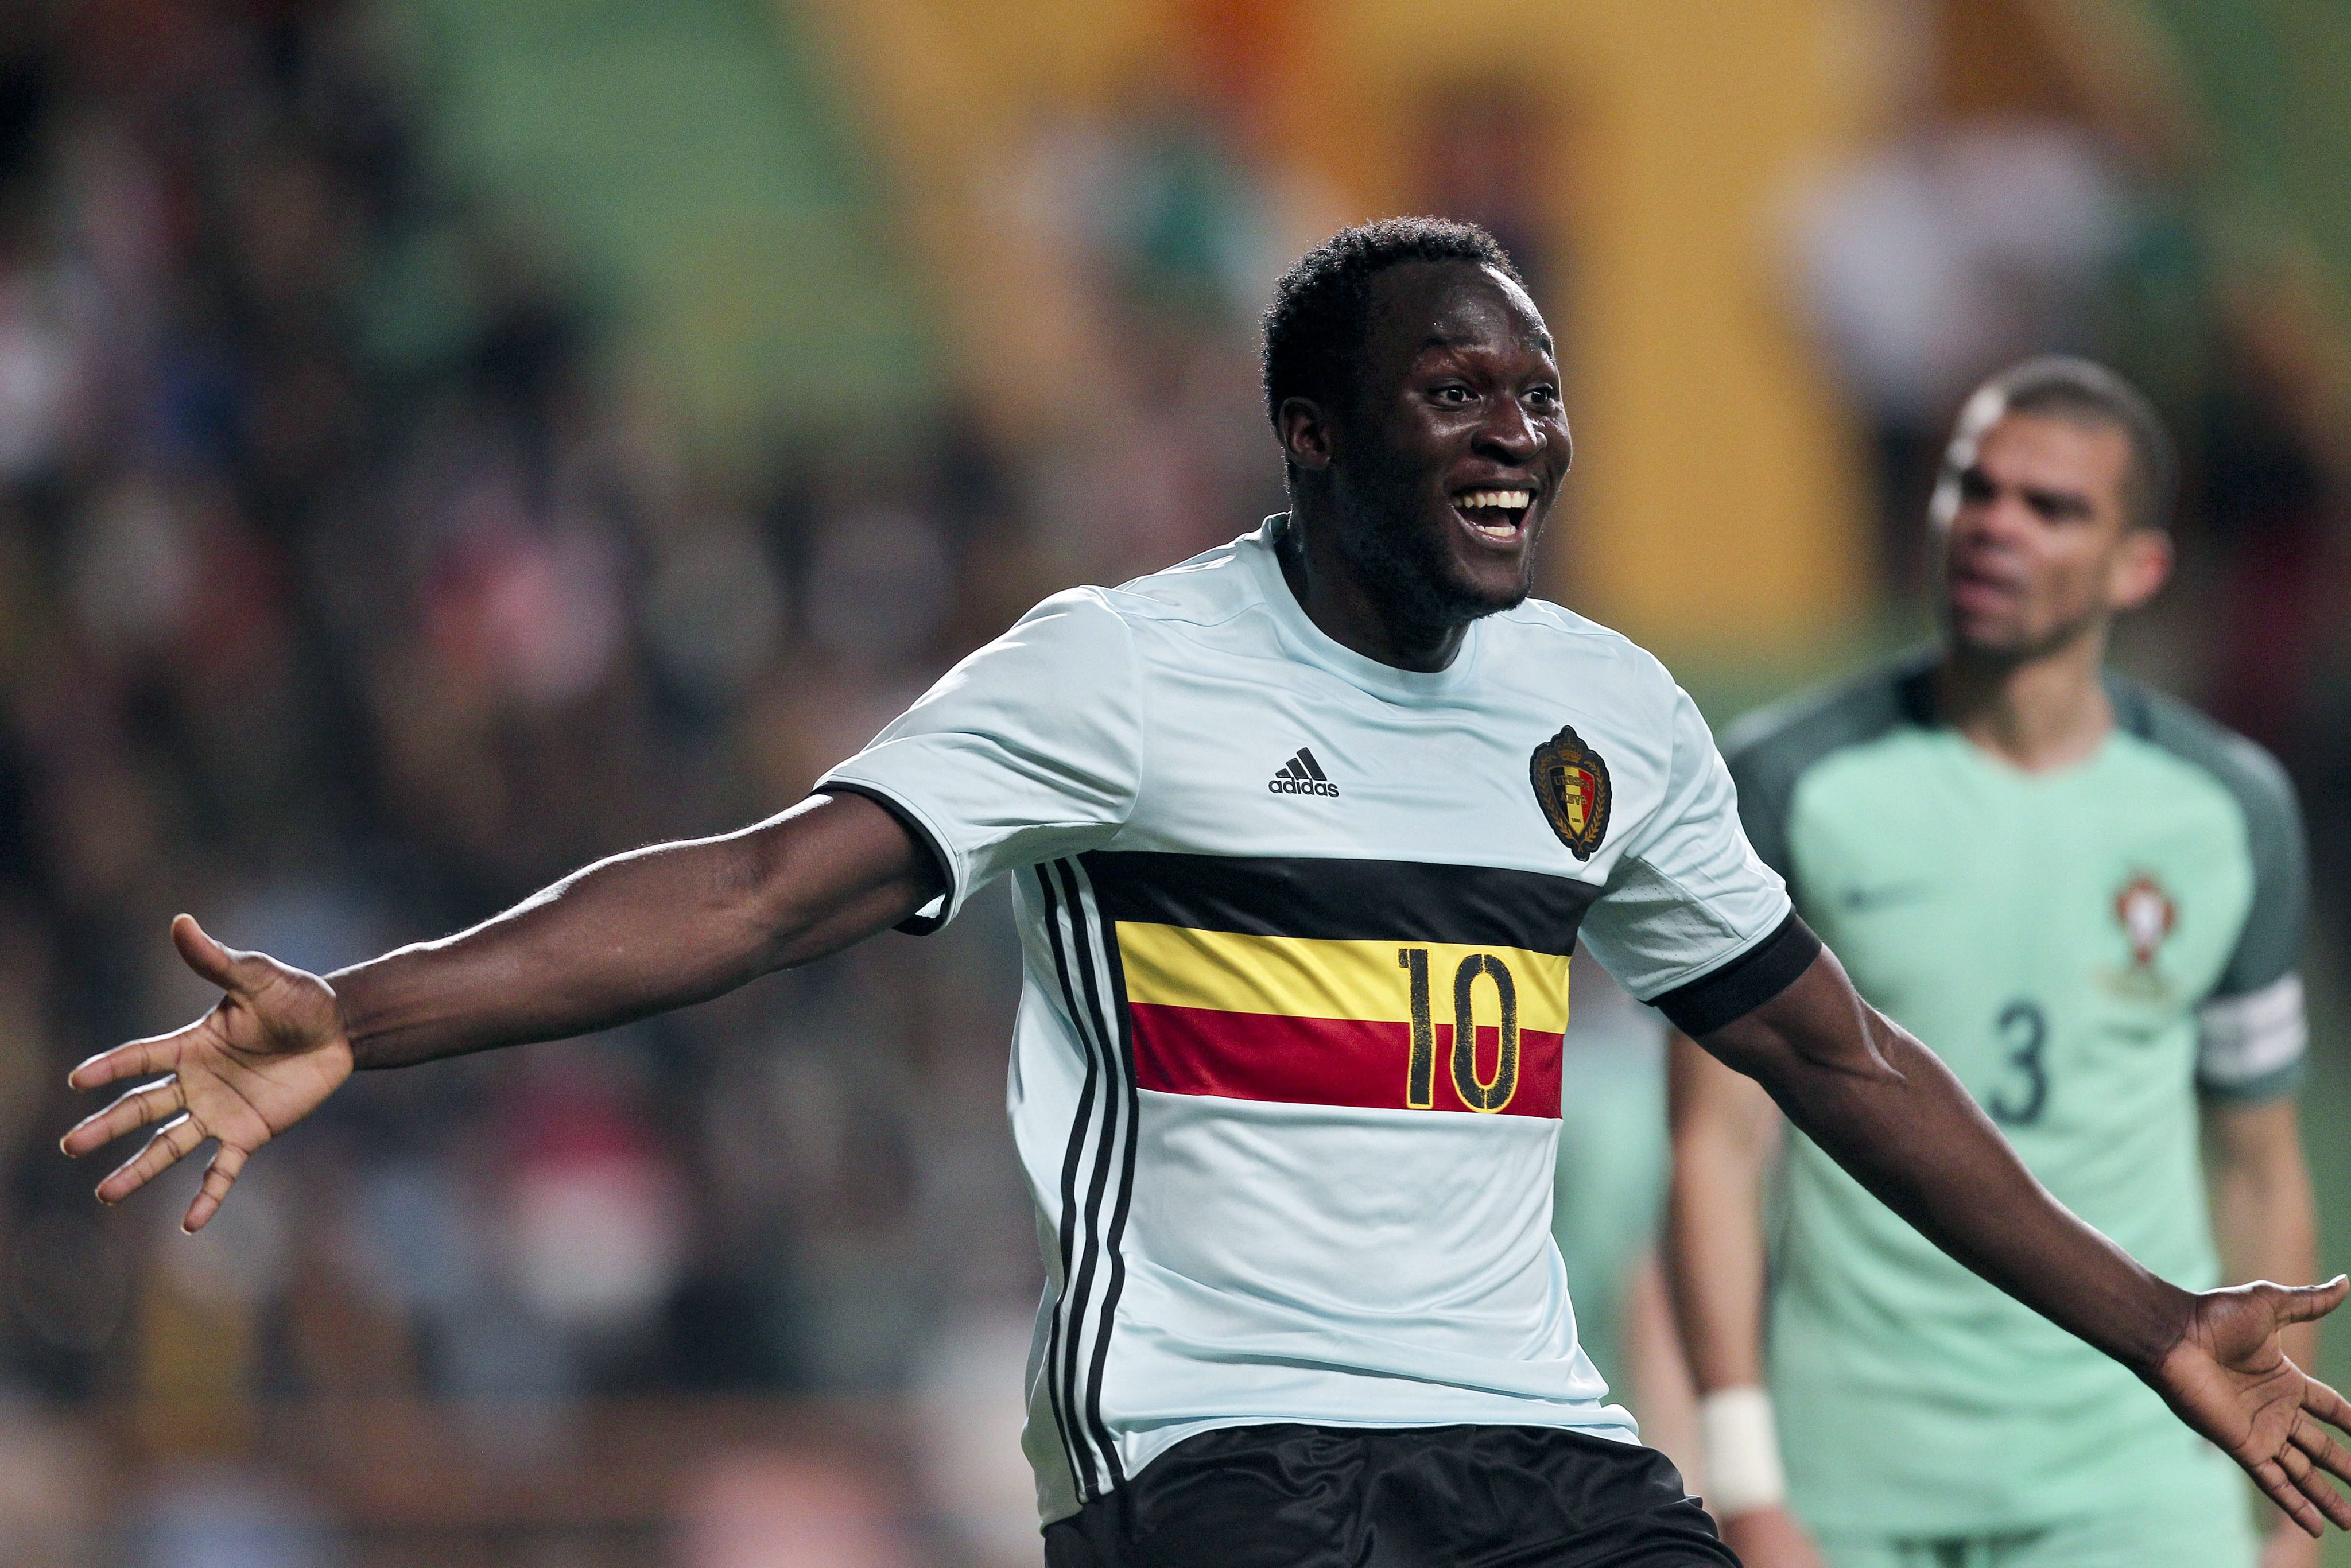 Belgium's Romelu Lukaku celebrates after scoring a goal against Portugal during the friendly soccer match between Portugal and Belgium at Magalhaes Pessoa Stadium in Leiria, Portugal, 29 March 2016.